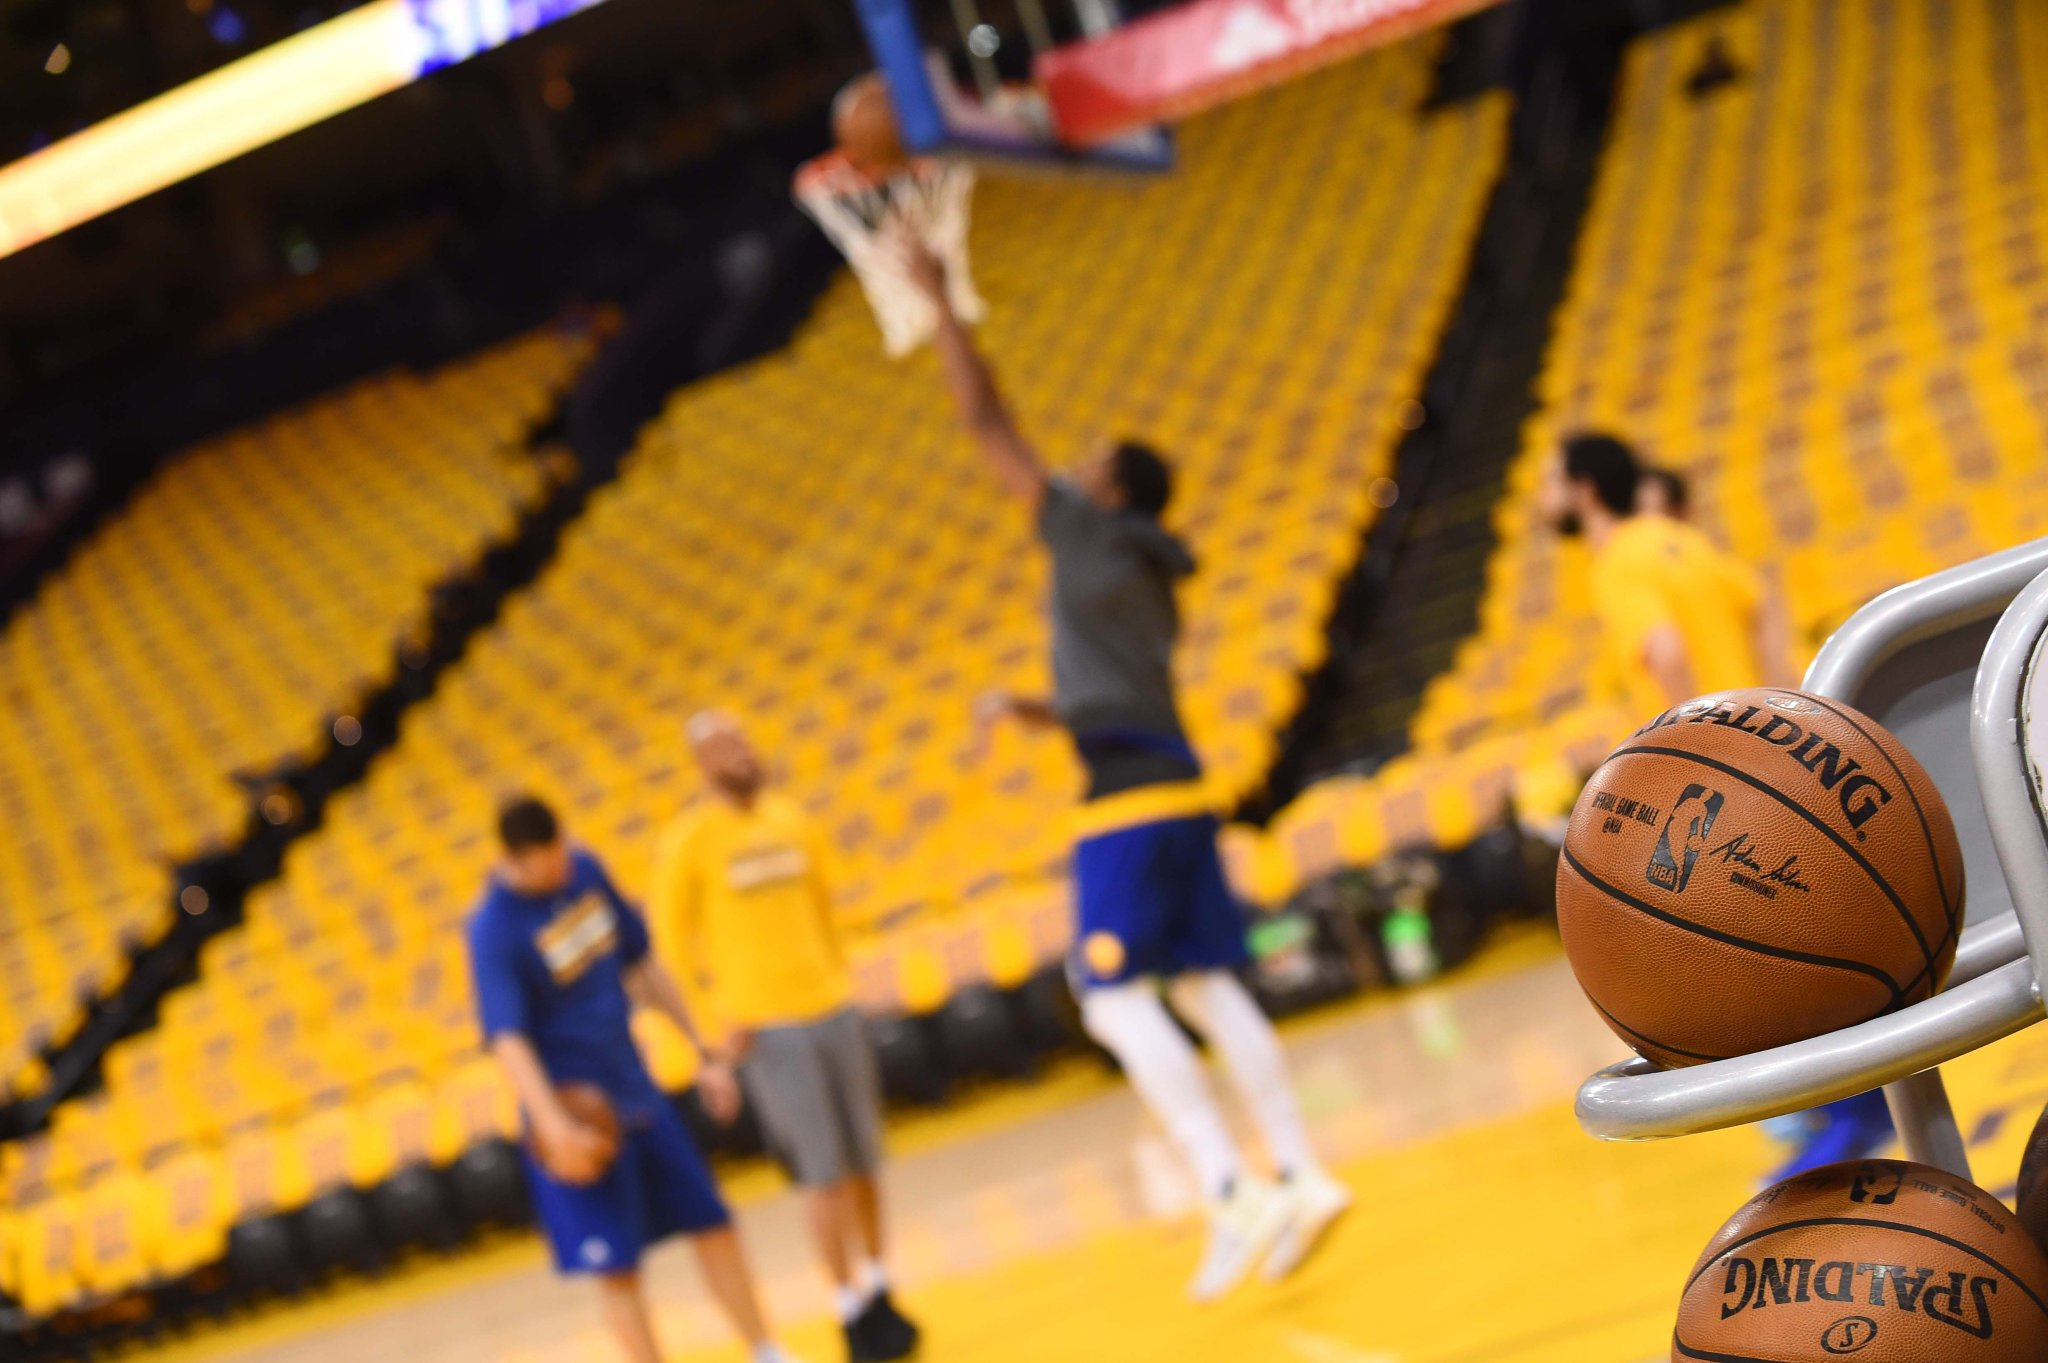 Game days are the best days. #DubNation https://t.co/yyyYQRWs3g